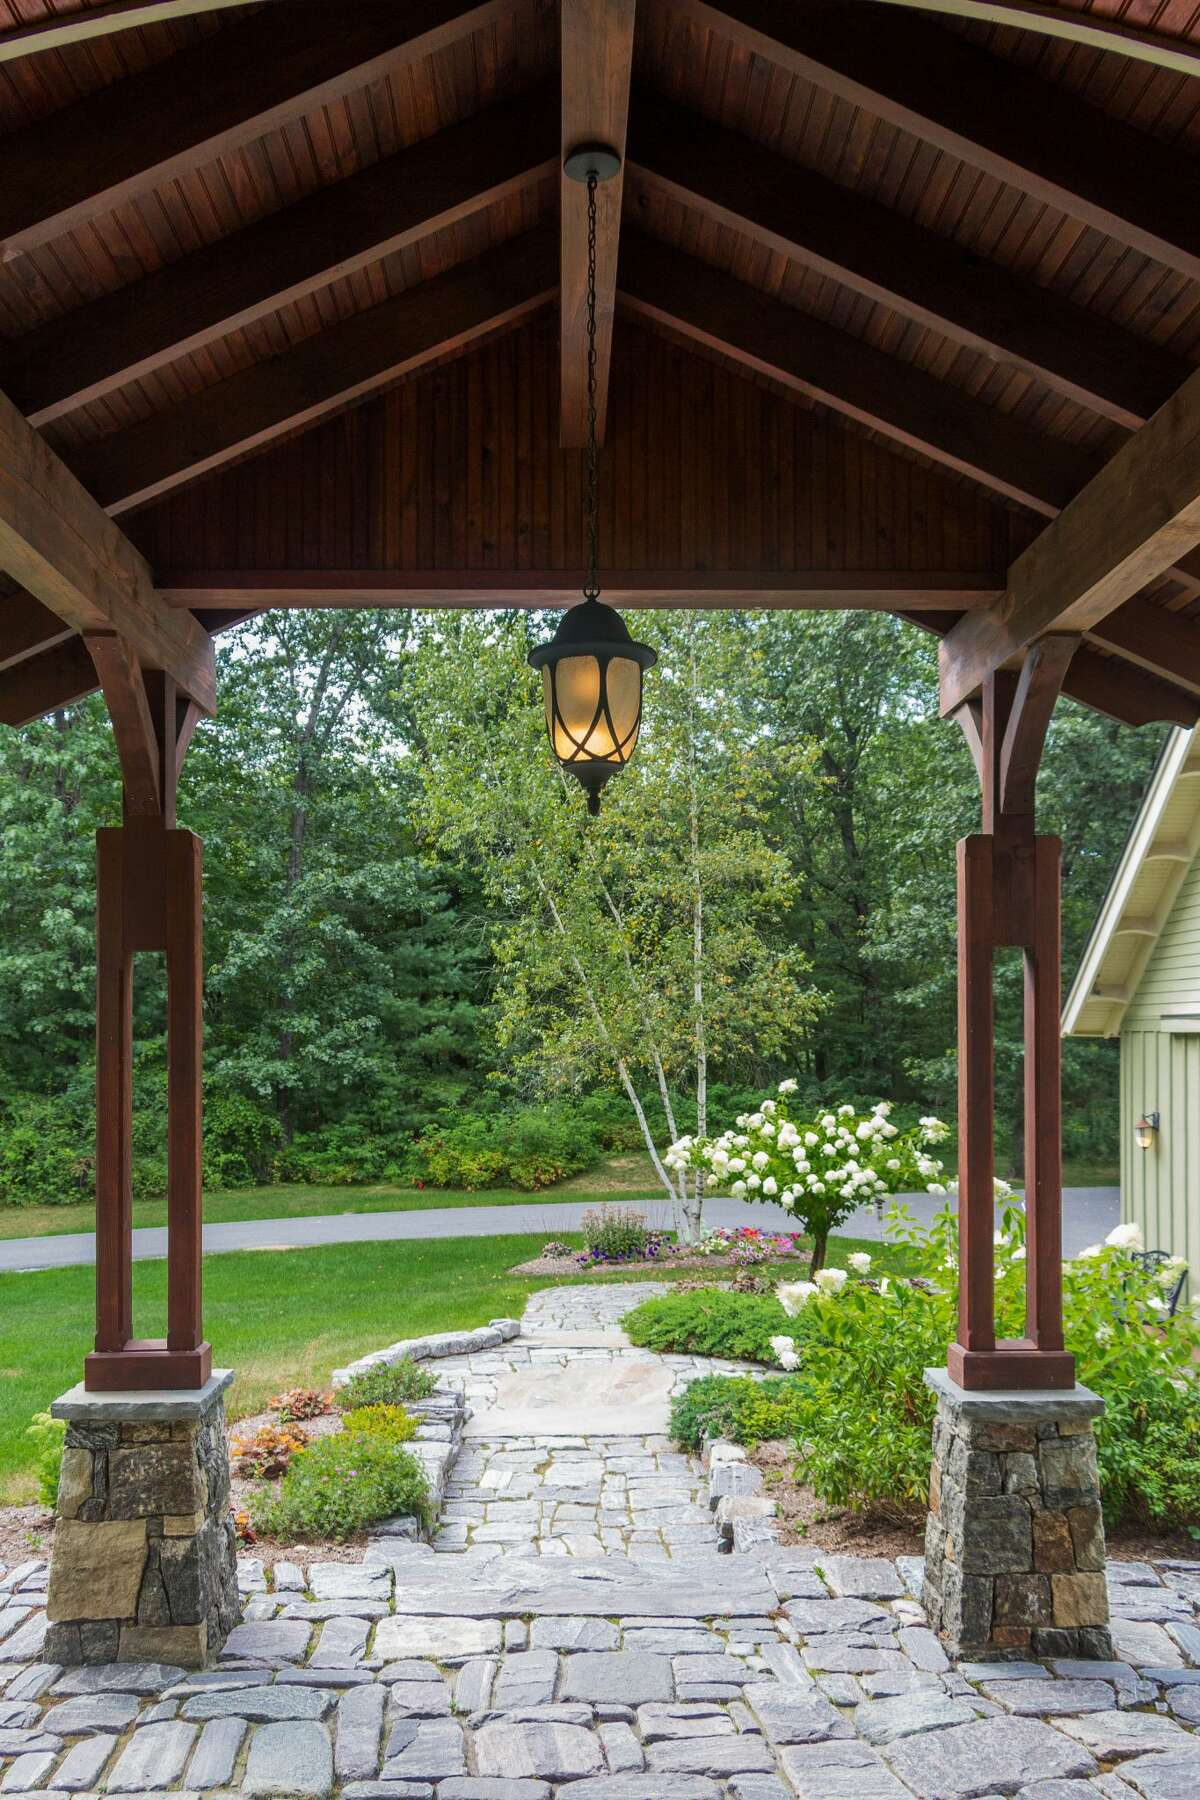 House of the Week: 149 Louden Rd., Wilton | Realtor: Andrea Demoracski of Select Sotheby's International Realty | Discuss: Talk about this house